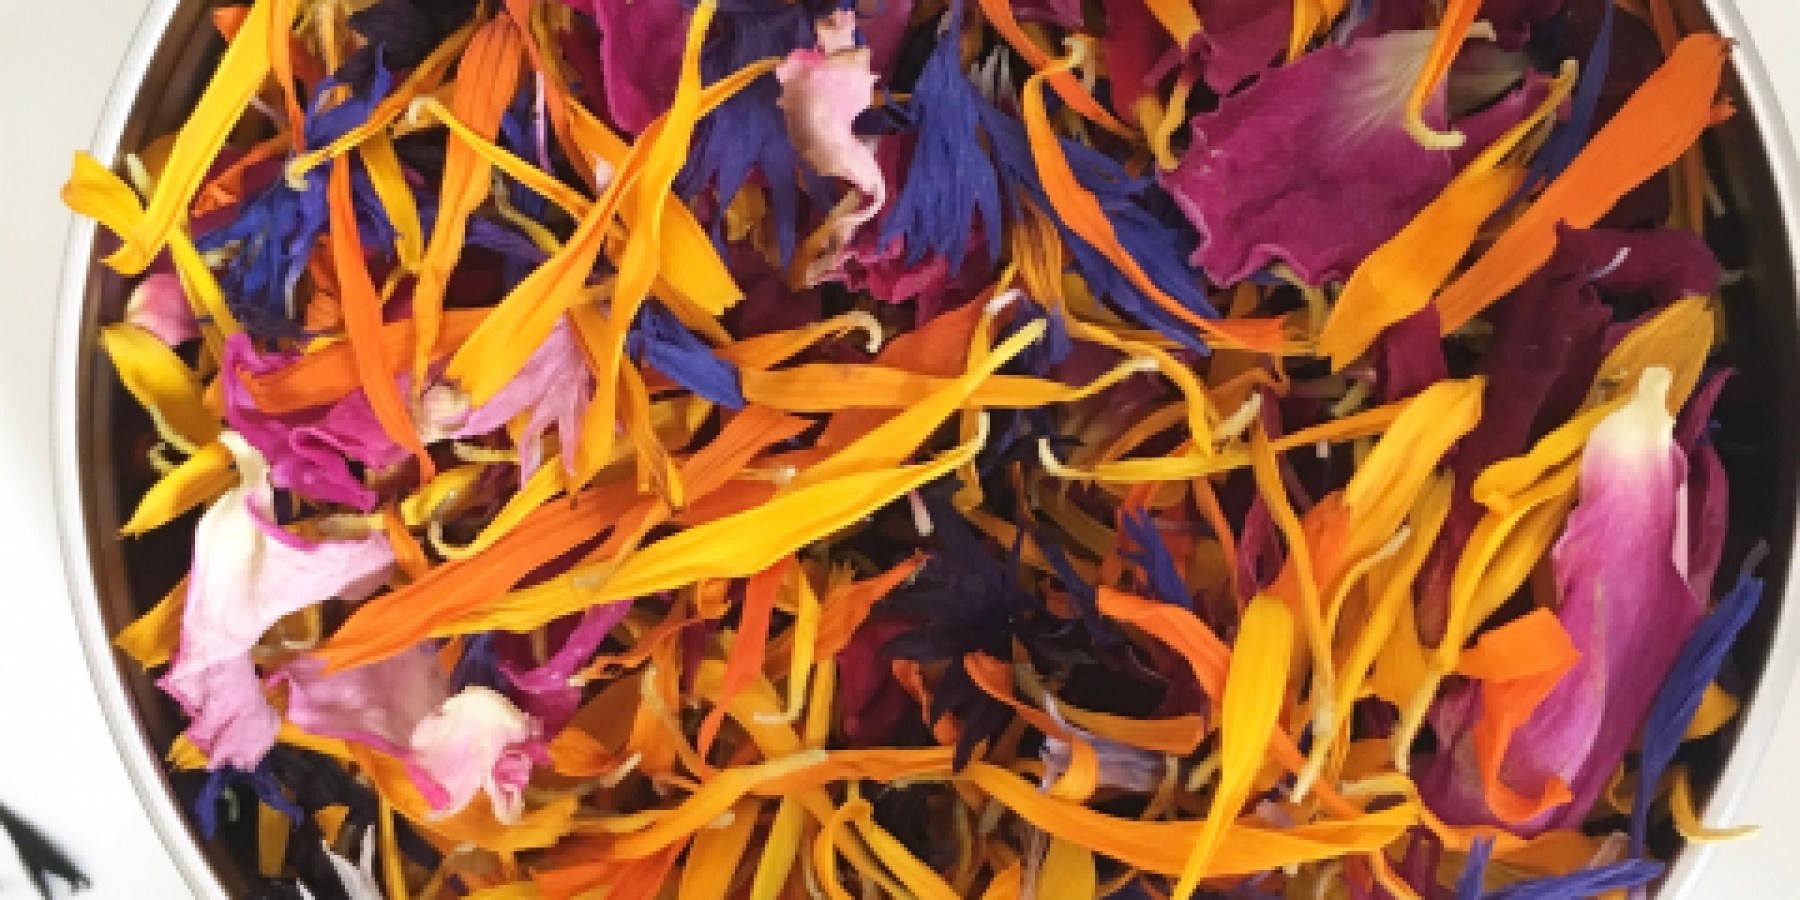 Dried edible flowers for cooking and decorating cakes. Buy dried edible flowers.